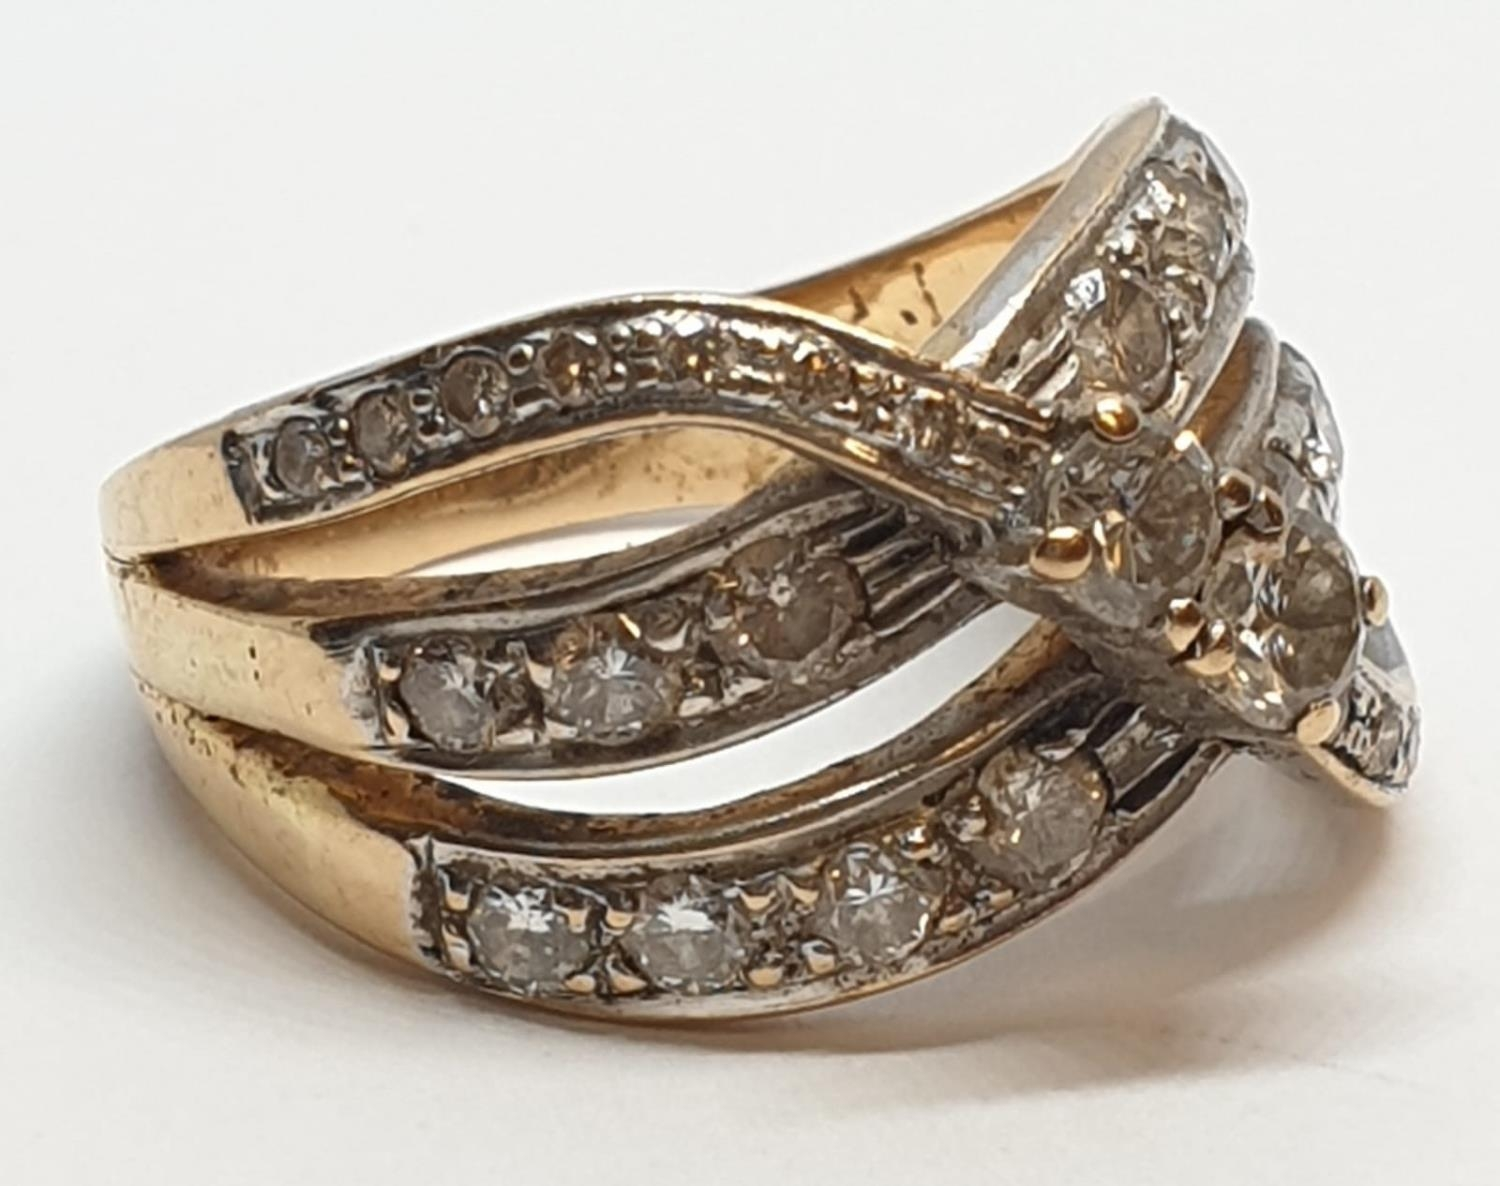 18ct Yellow gold diamond set fancy three row twist band ring. Weight 8.5g, Approx. 0.60ct of - Image 5 of 14